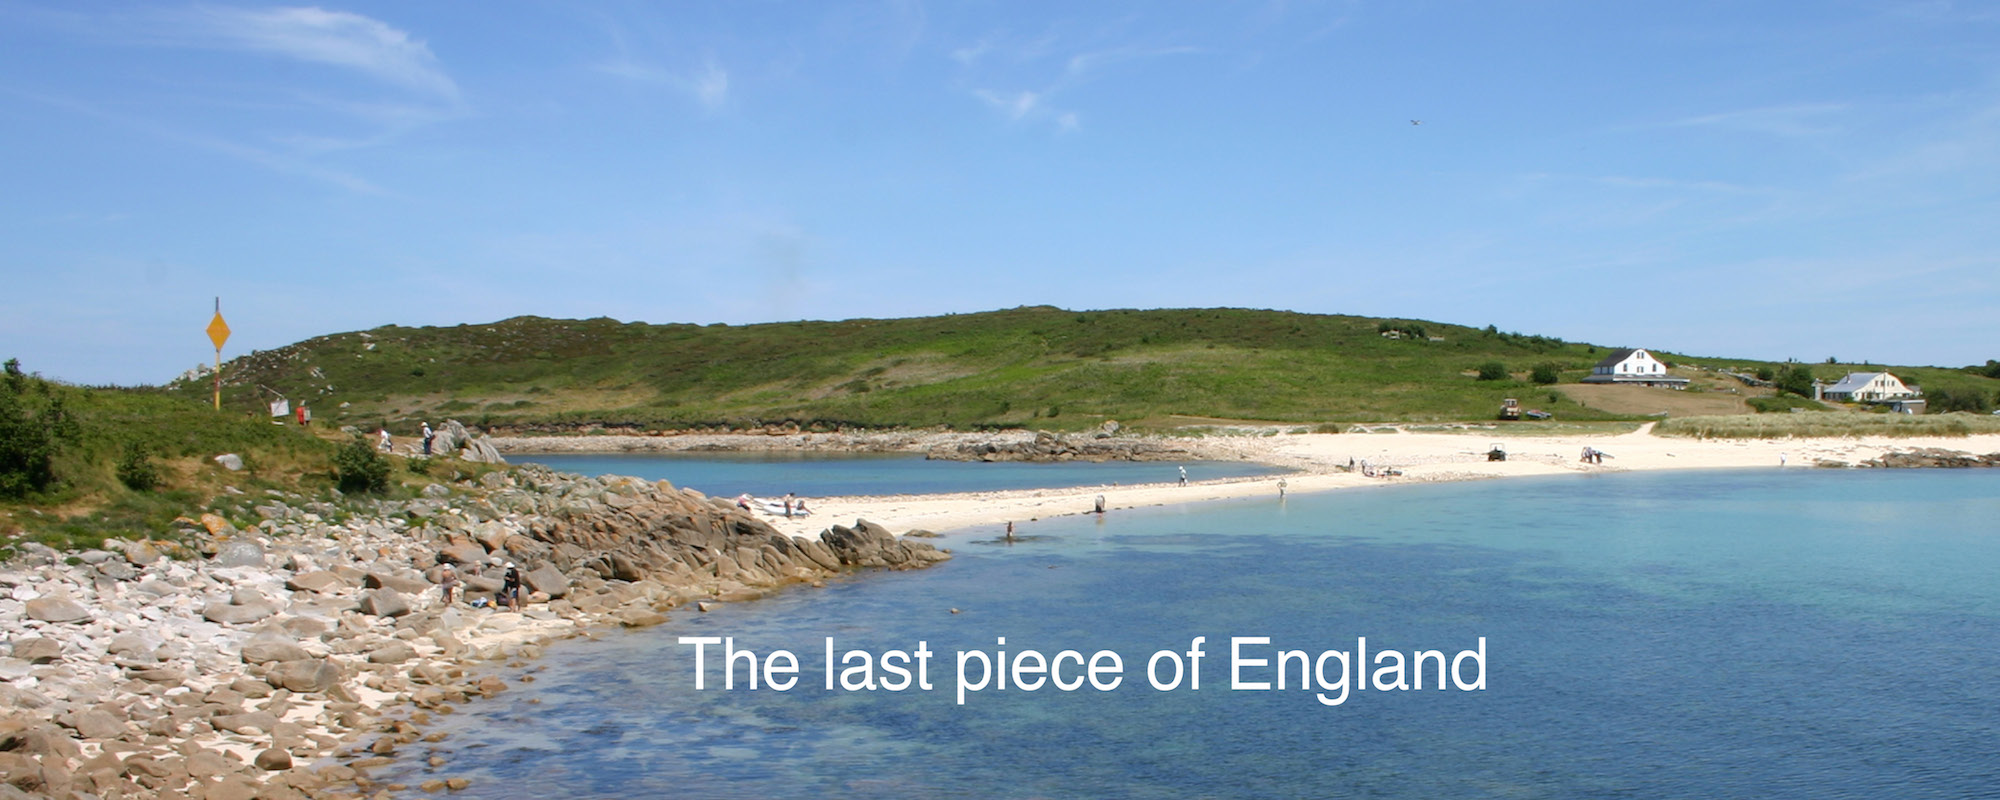 The last piece of England